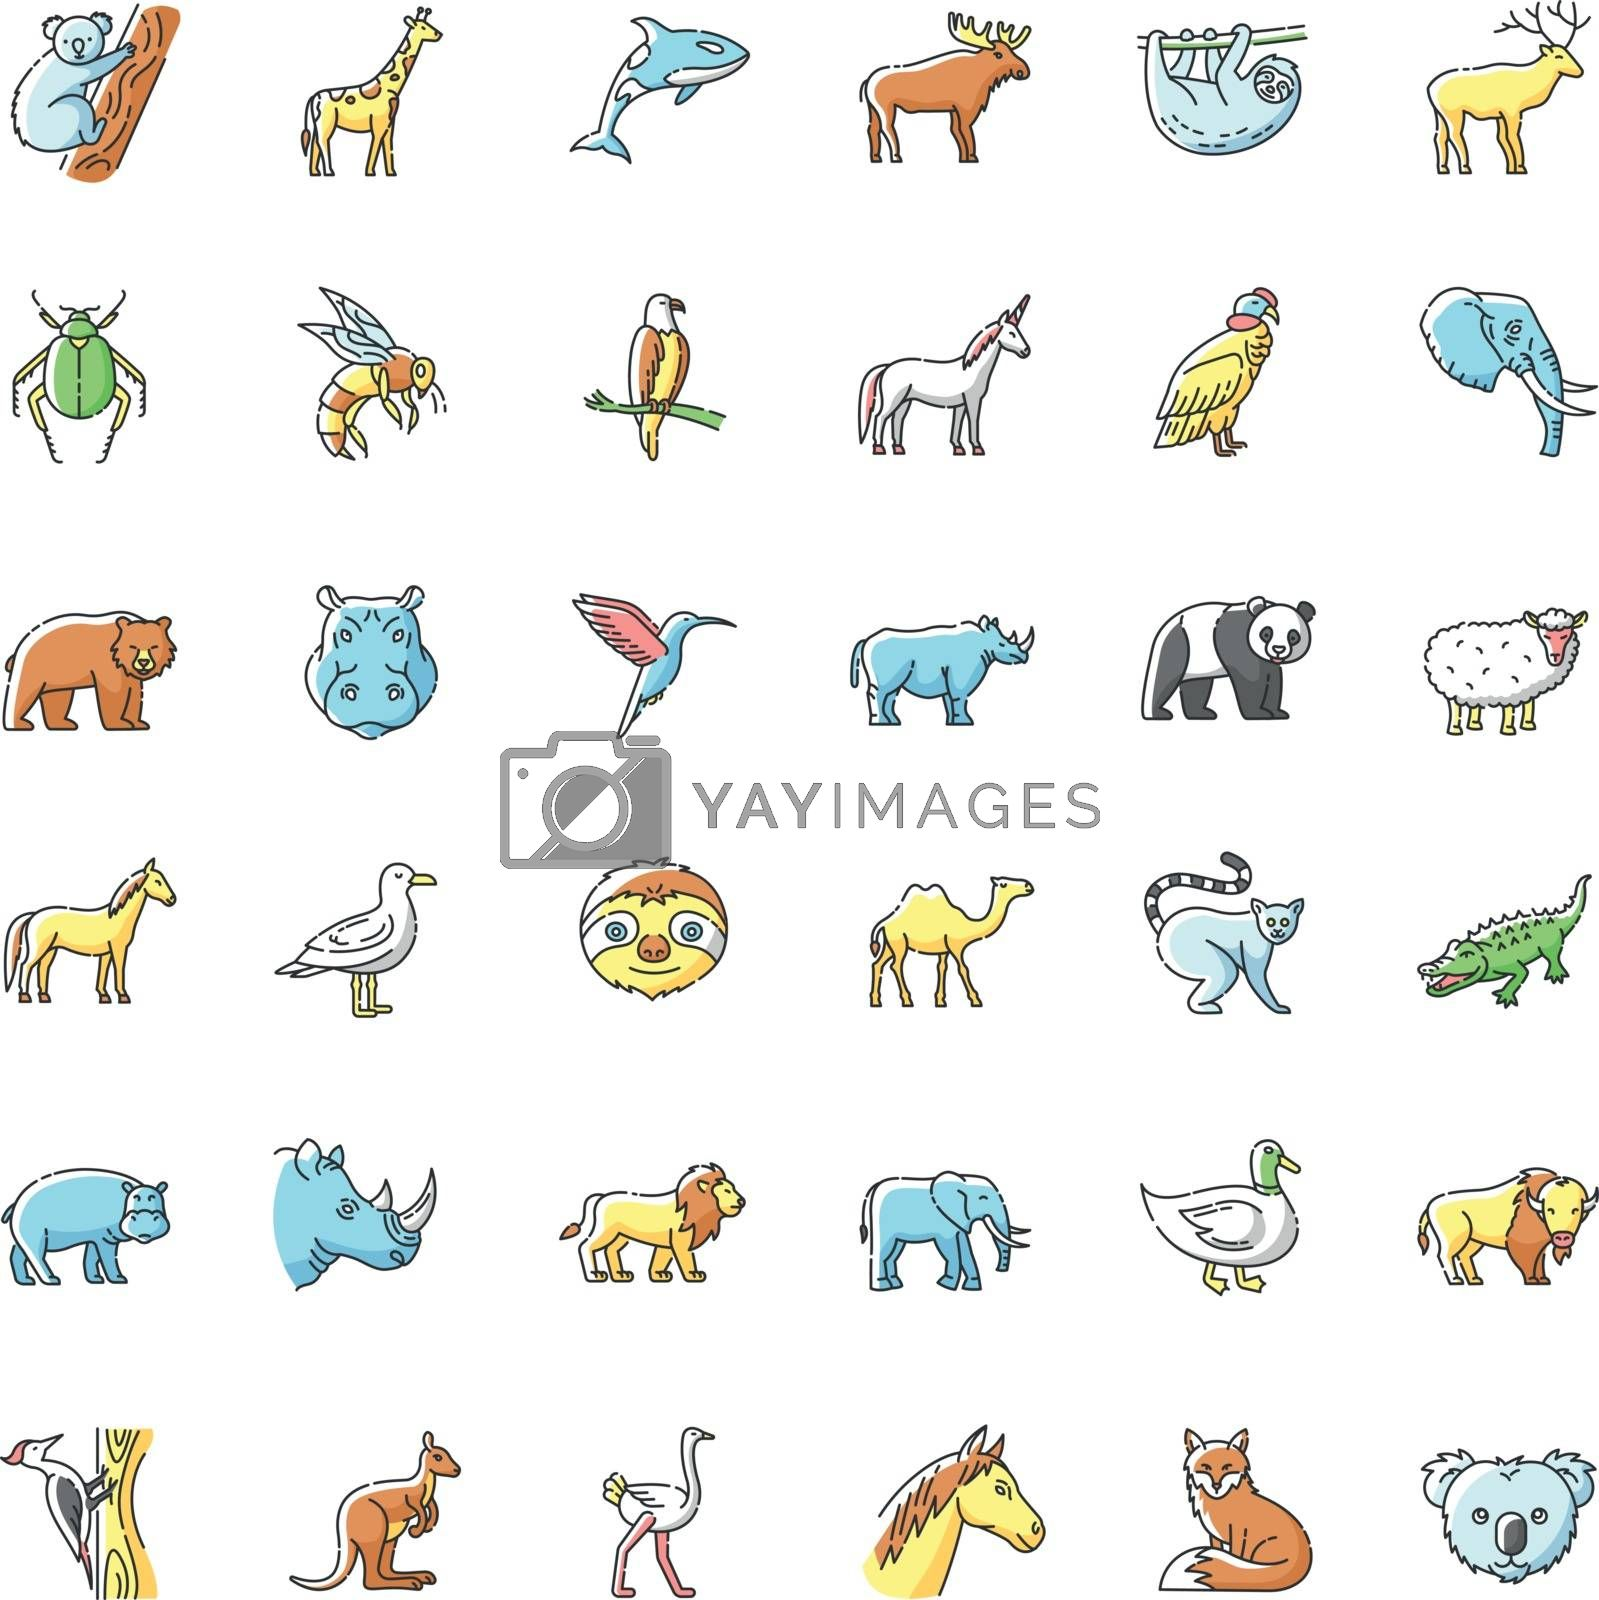 Animals RGB color icons set. Different wildlife, diverse fauna. Common and exotic animal species. Flying, land and sea creatures. Isolated vector illustrations